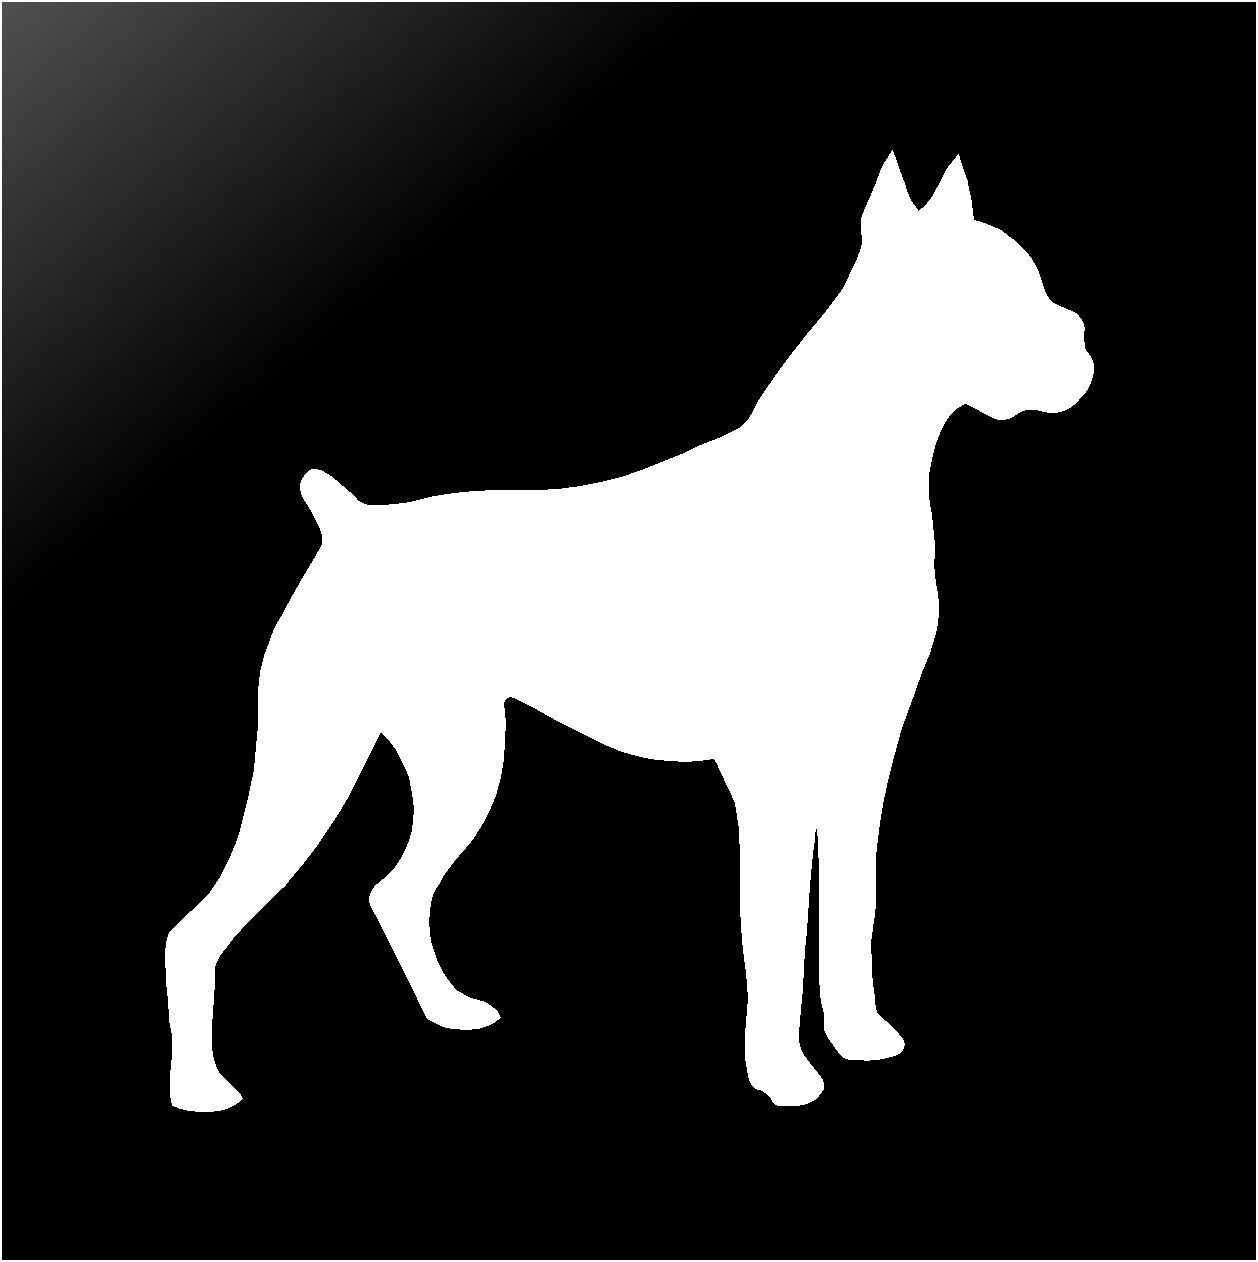 boxer dog silhouette boxer dog silhouette at getdrawings free download dog boxer silhouette